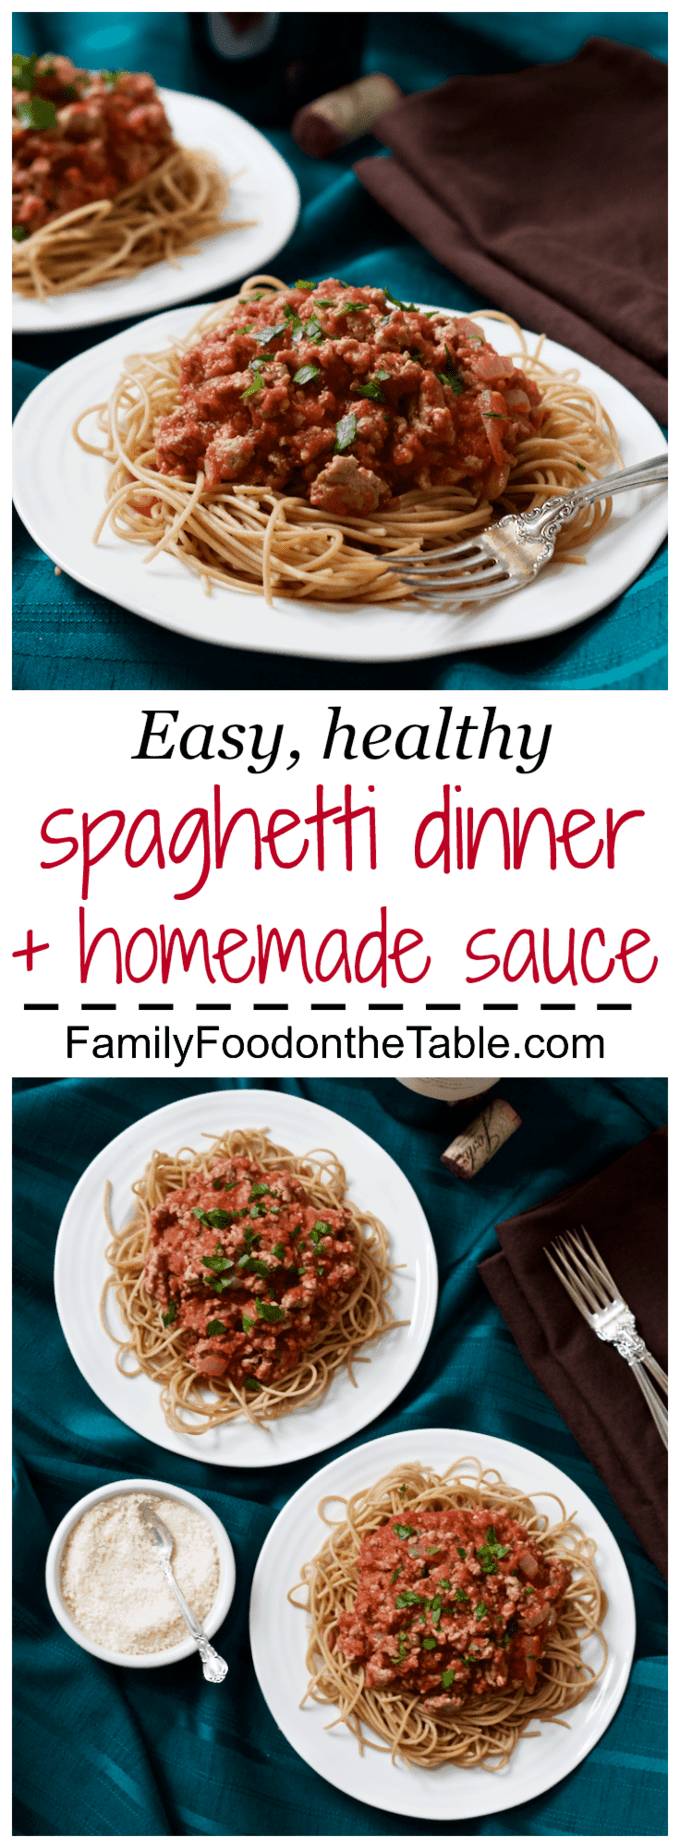 A healthier spaghetti dinner with ground turkey, whole wheat noodles and a simple, and simply divine, homemade sauce.